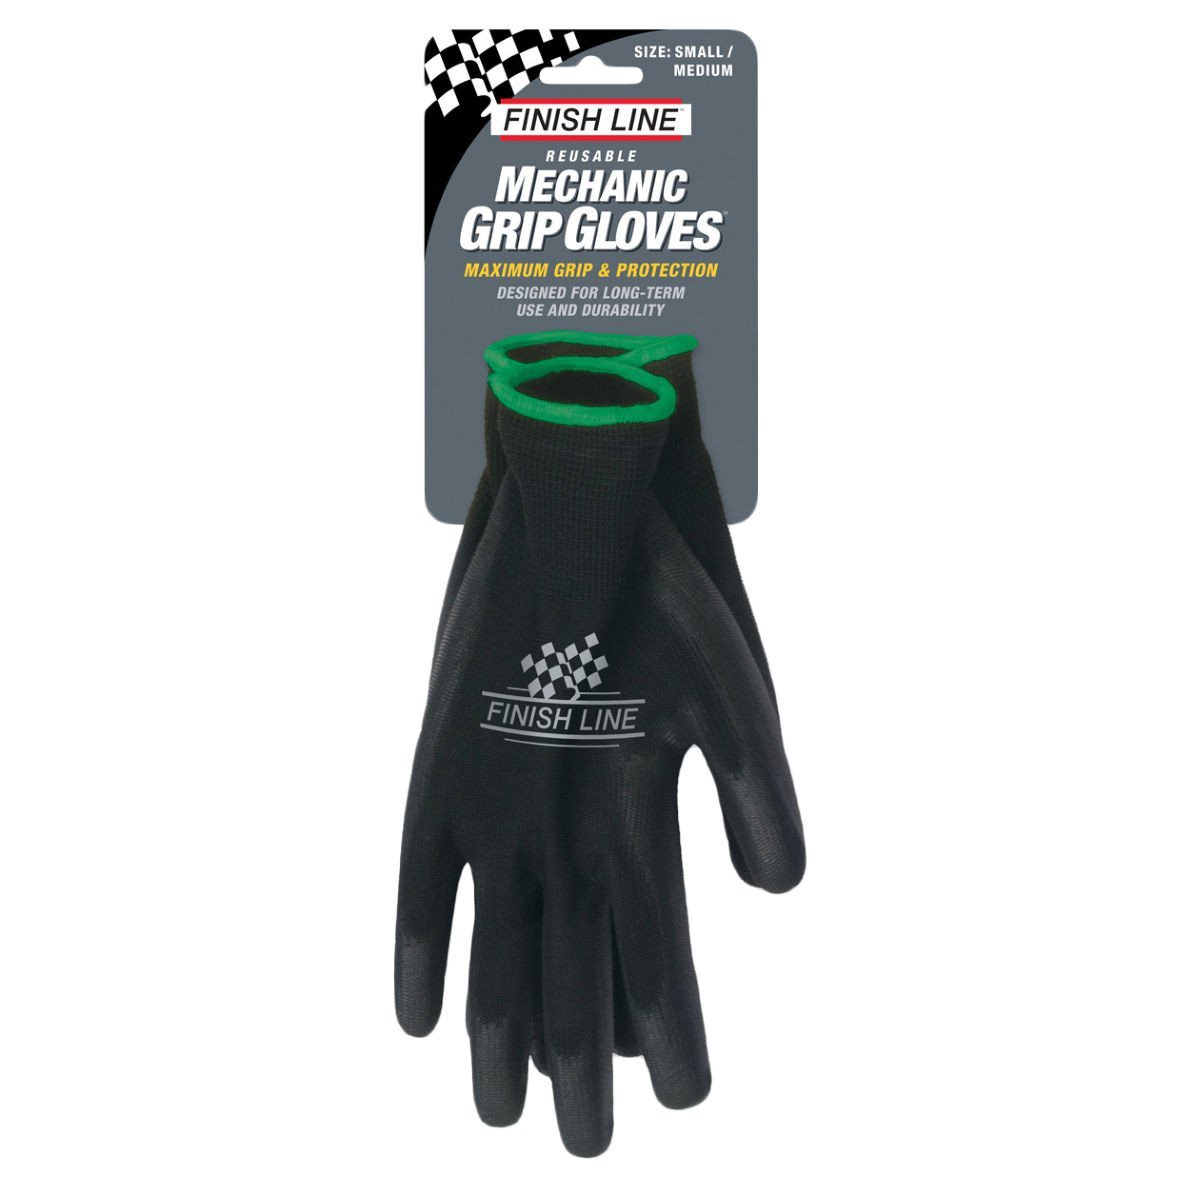 Finish Line Accessories > Locks & Tools Finish Line Mechanic Grip Gloves